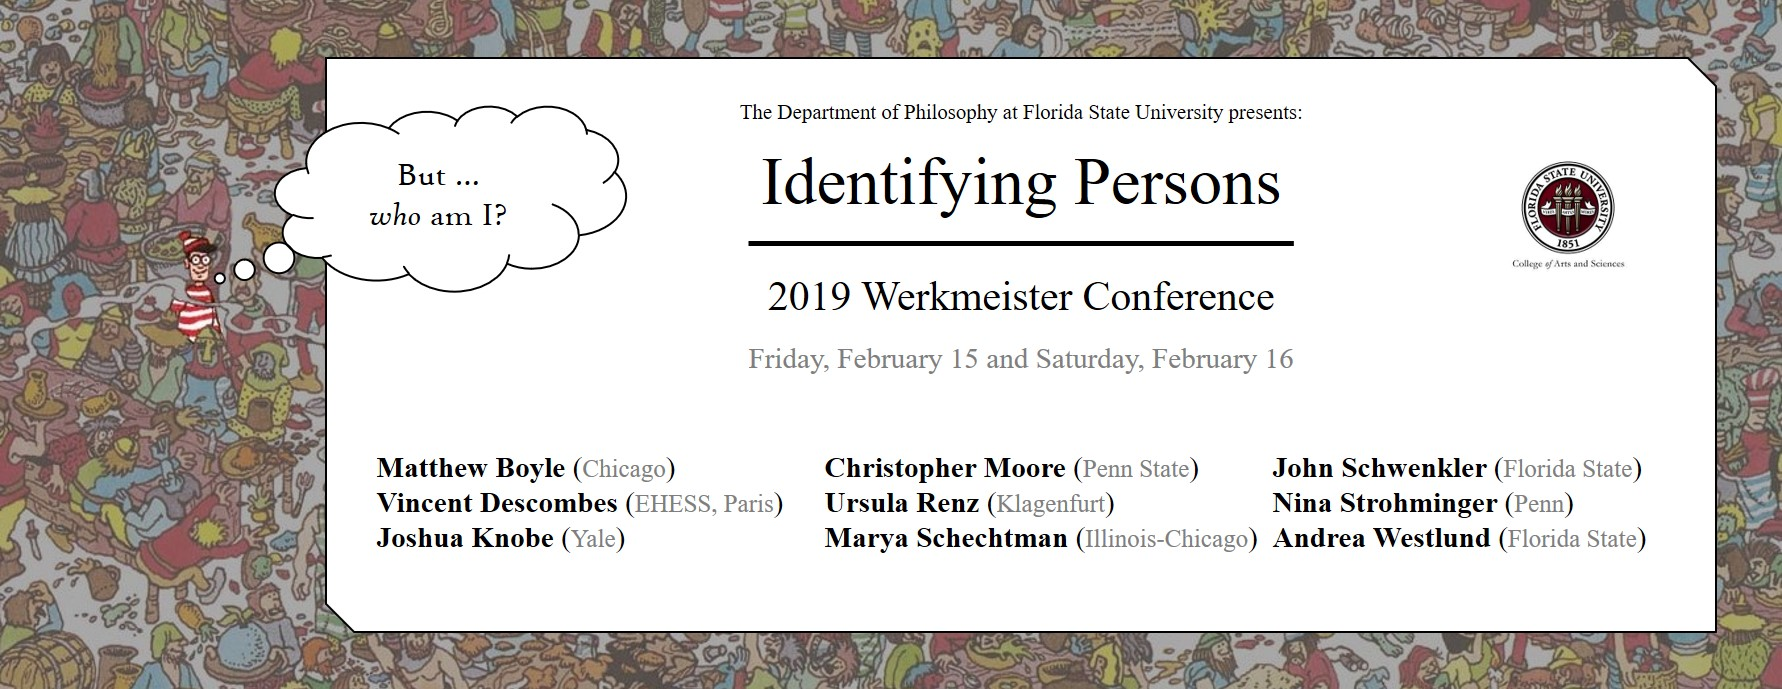 2019 werkmeister conference announcement identifying persons